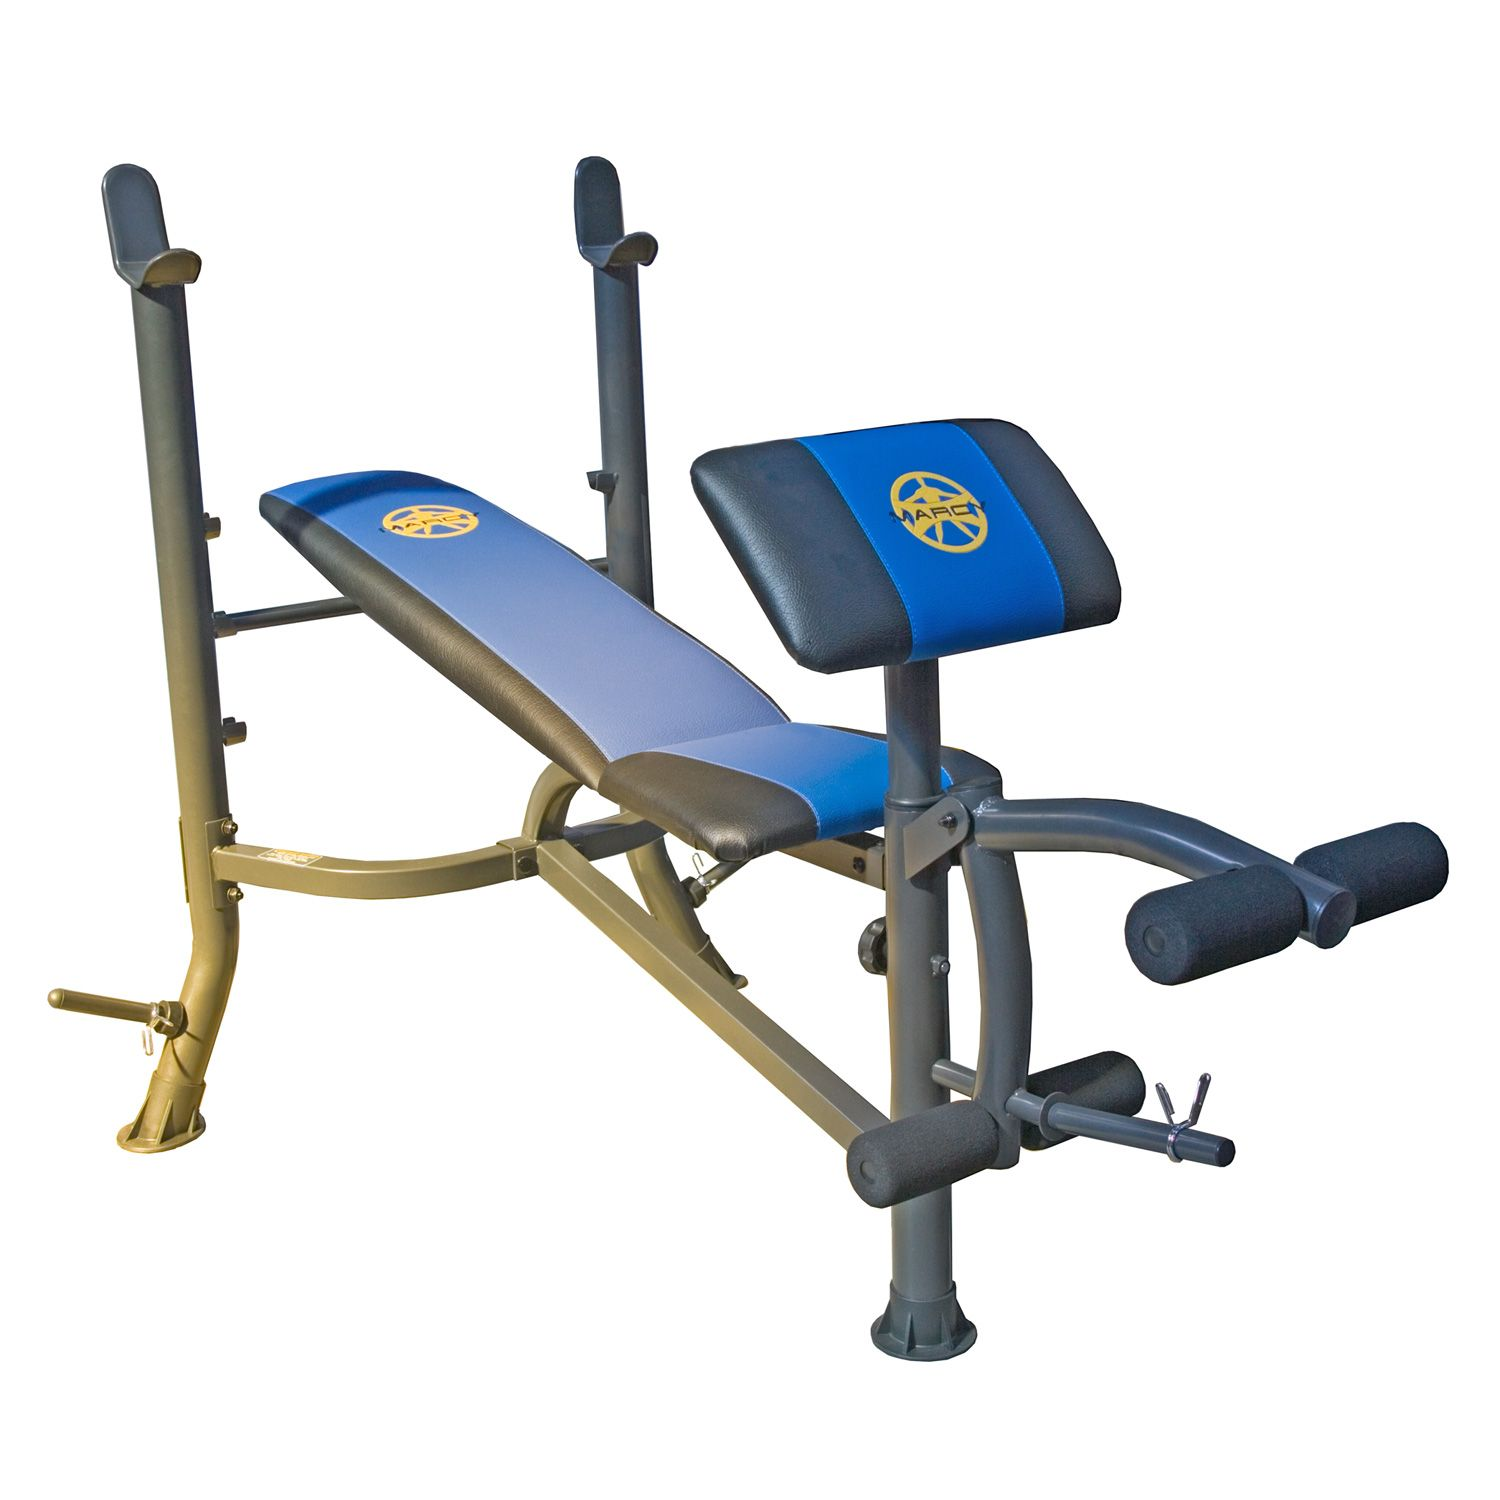 Marcy wm367 weight bench ebay Bench weights